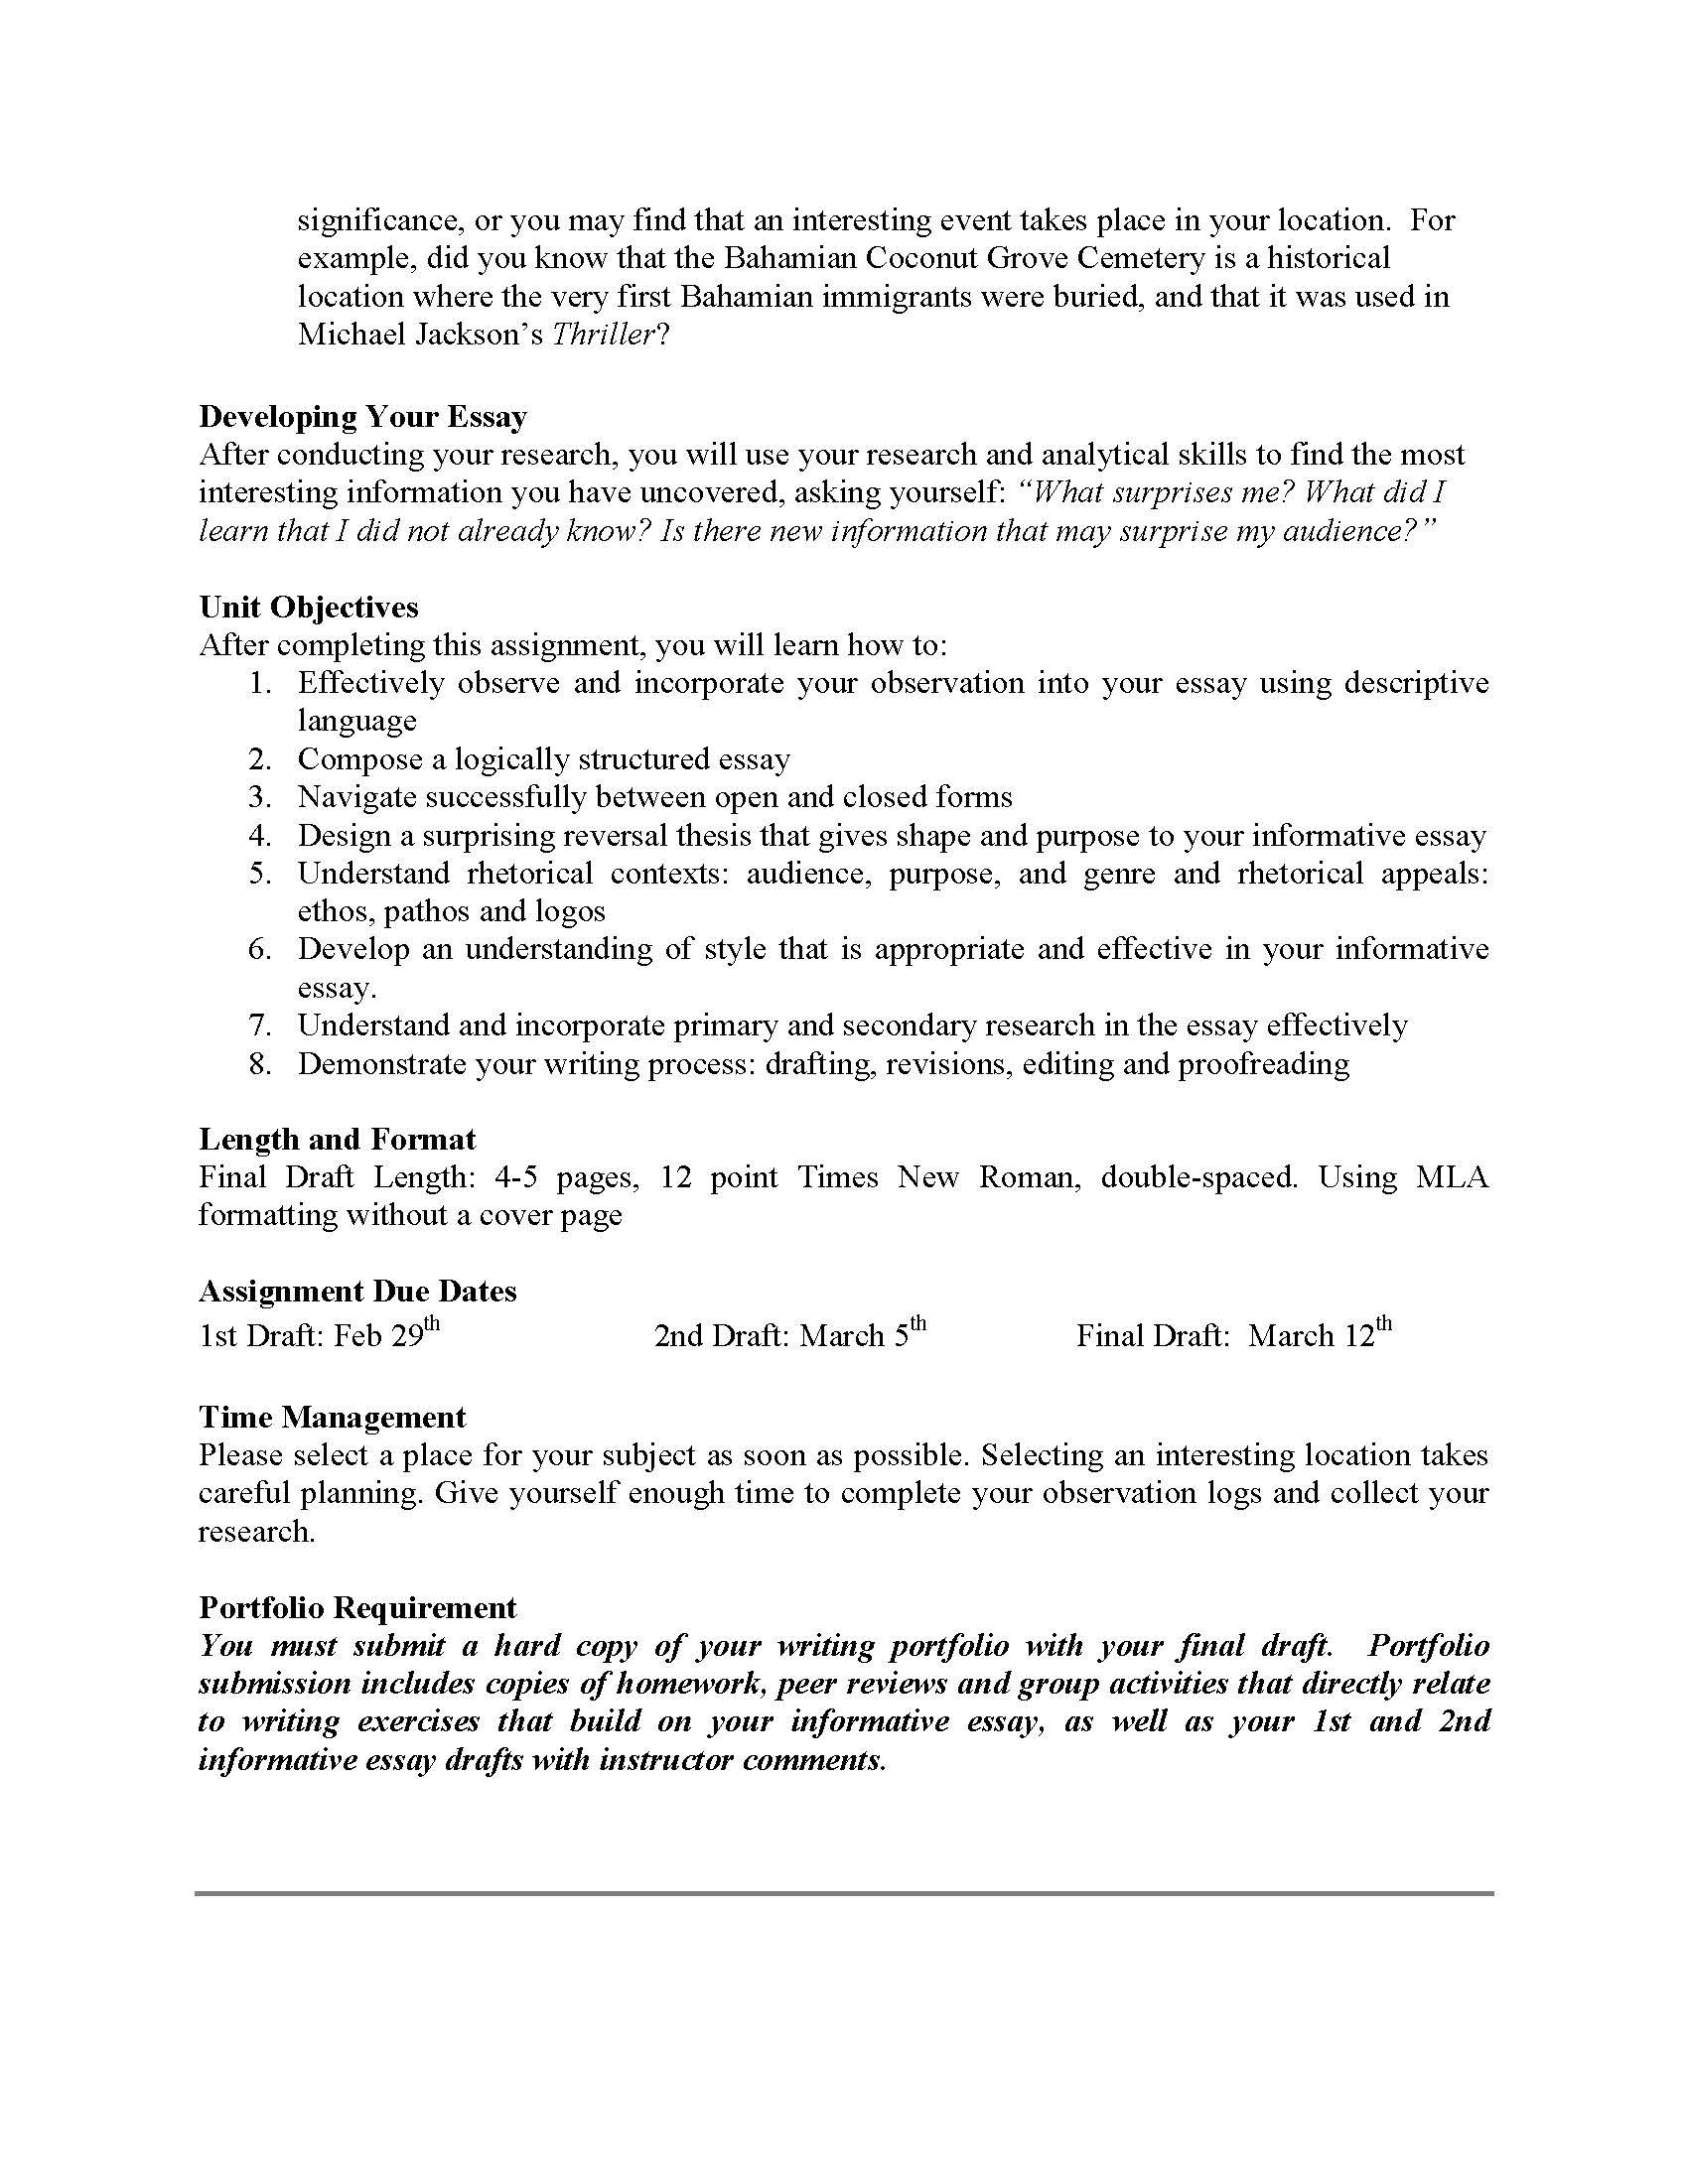 026 Informative Essay Unit Assignment Page 2 How To Write An Explanatory Singular Expository Middle School Introduction Full